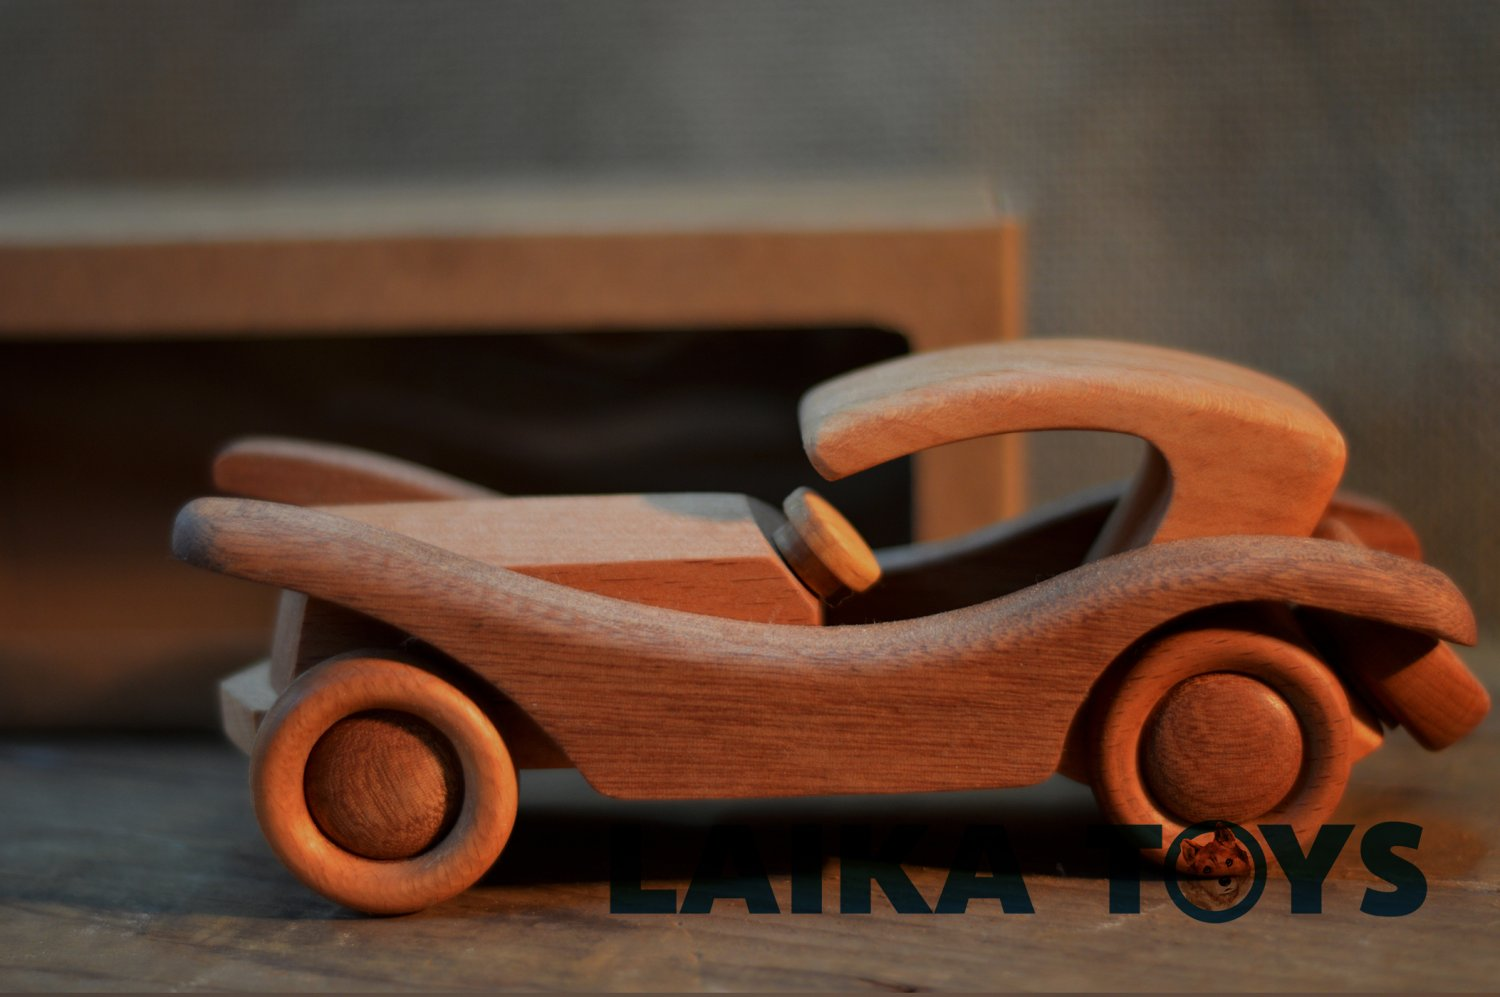 Handcrafted wooden retro toy car - Gift for boys - Birthday gift for kids - Wooden Toy